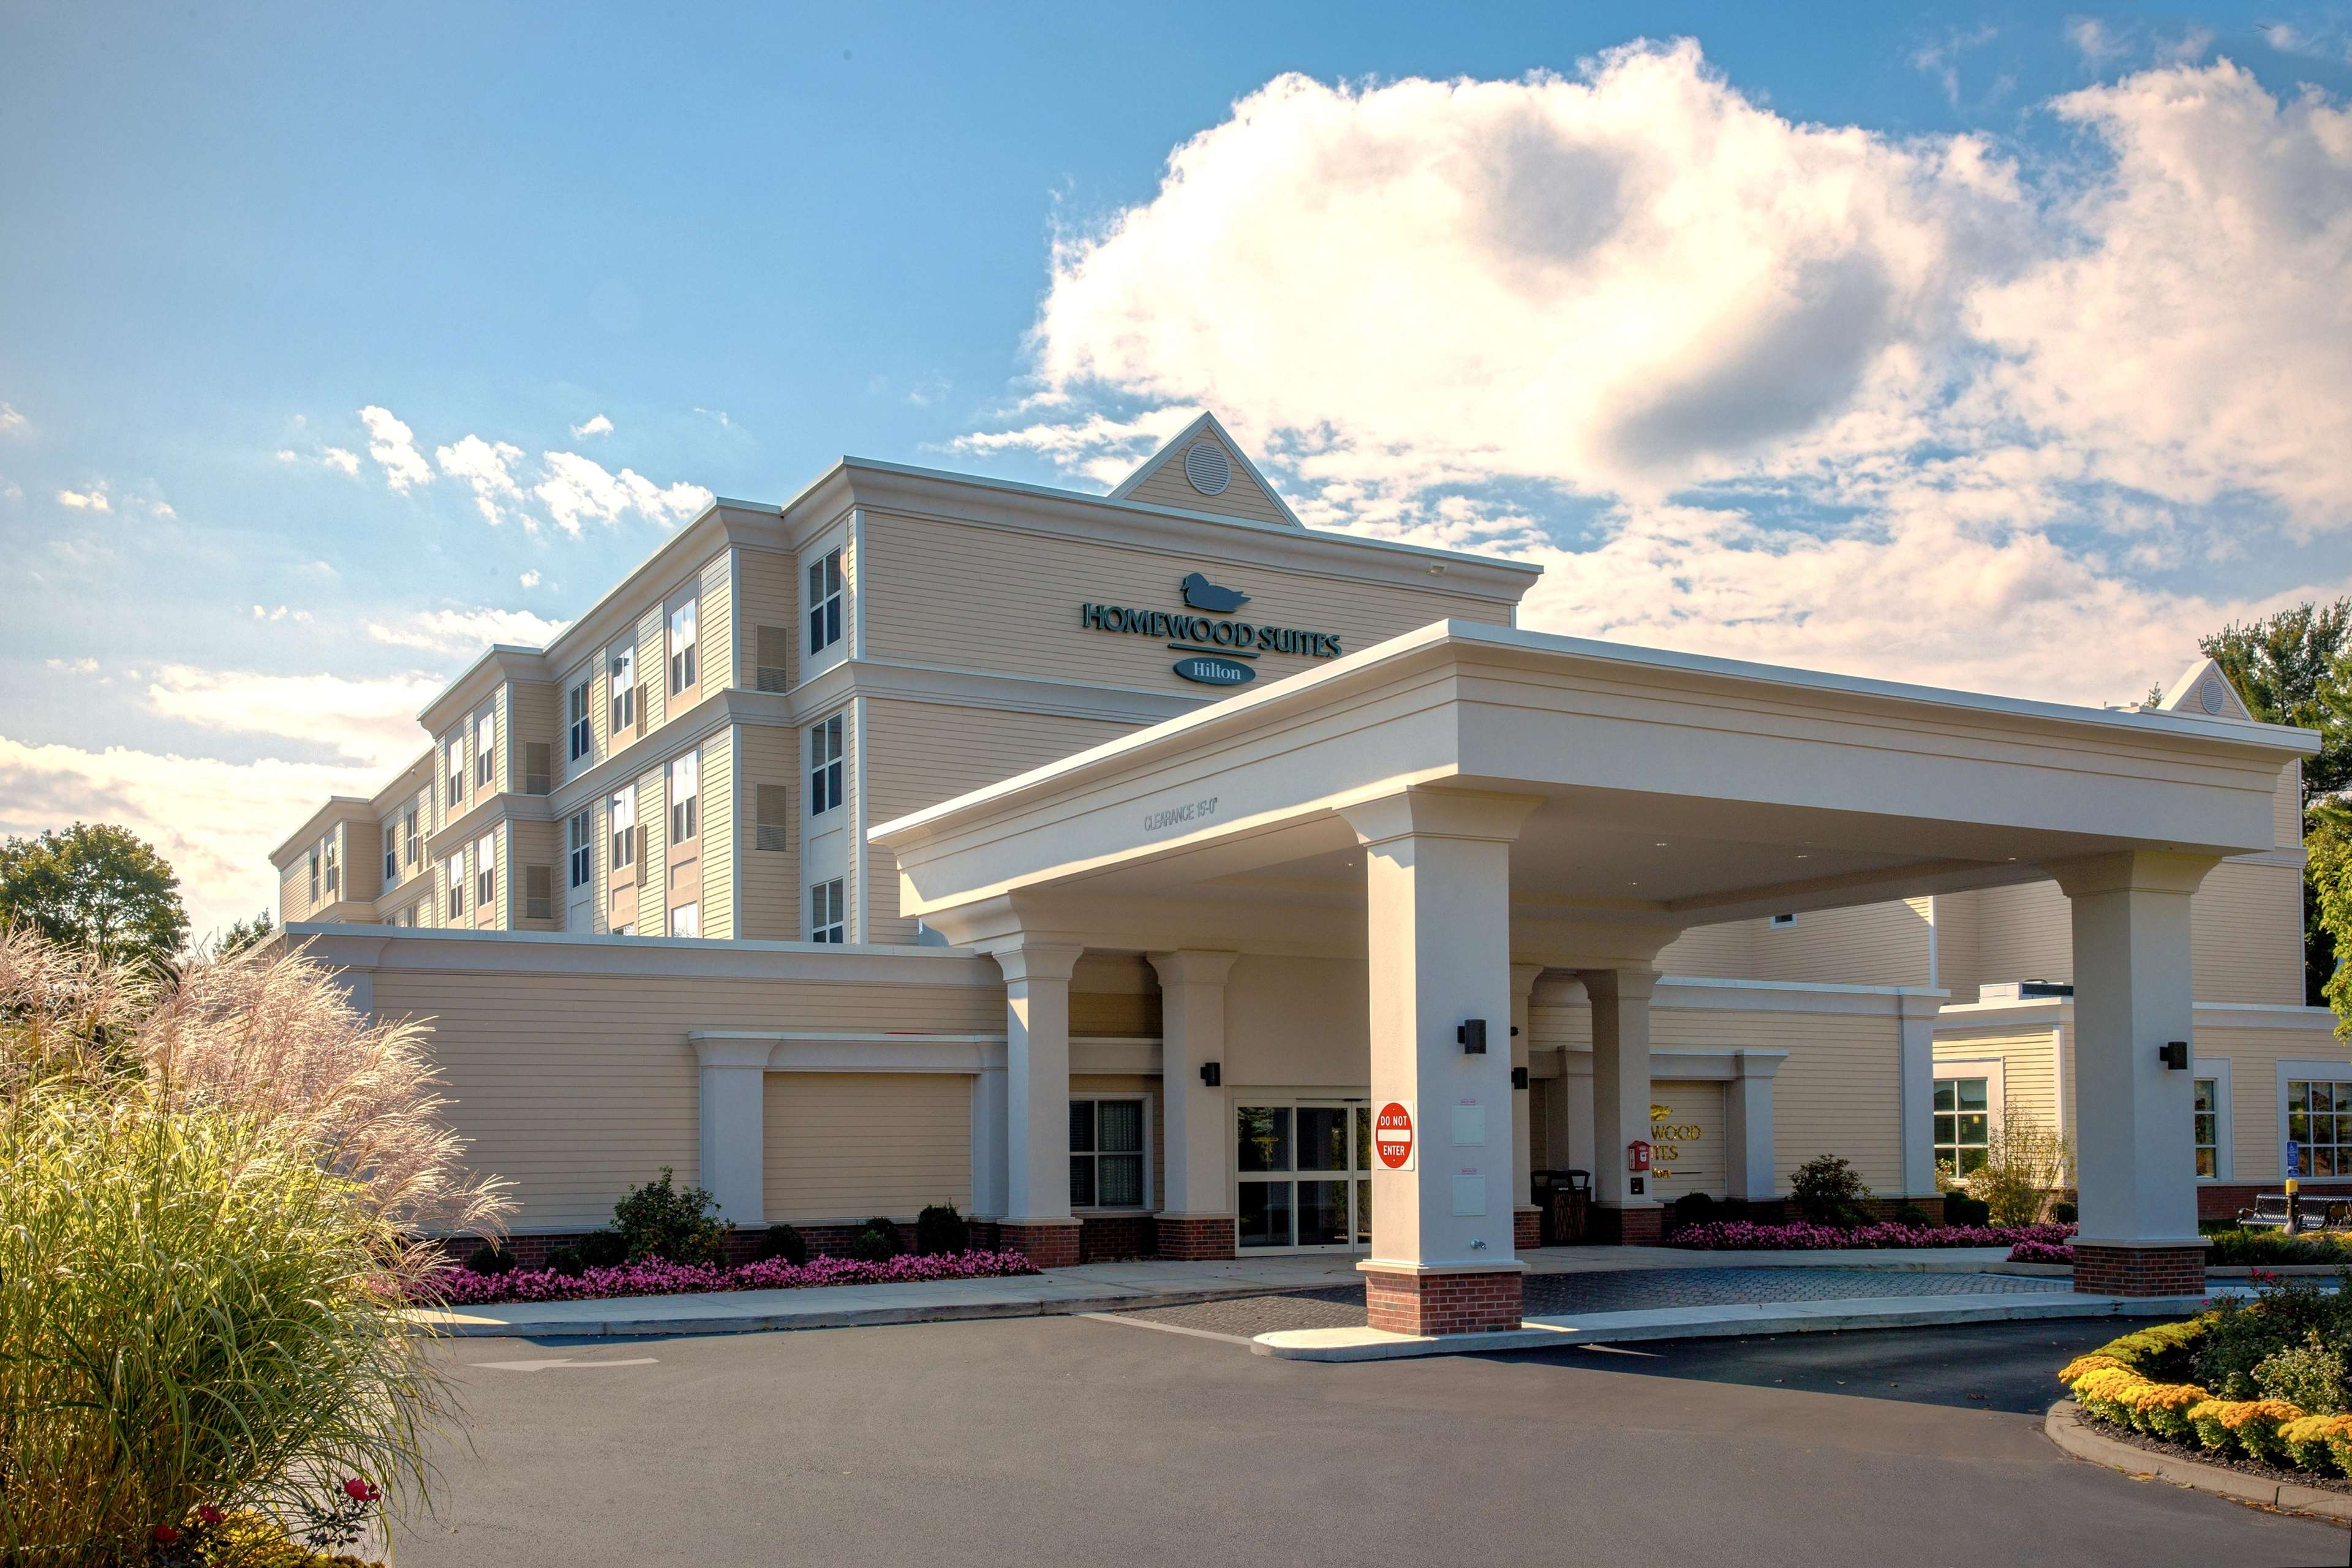 Homewood Suites by Hilton Boston/Canton, MA image 2